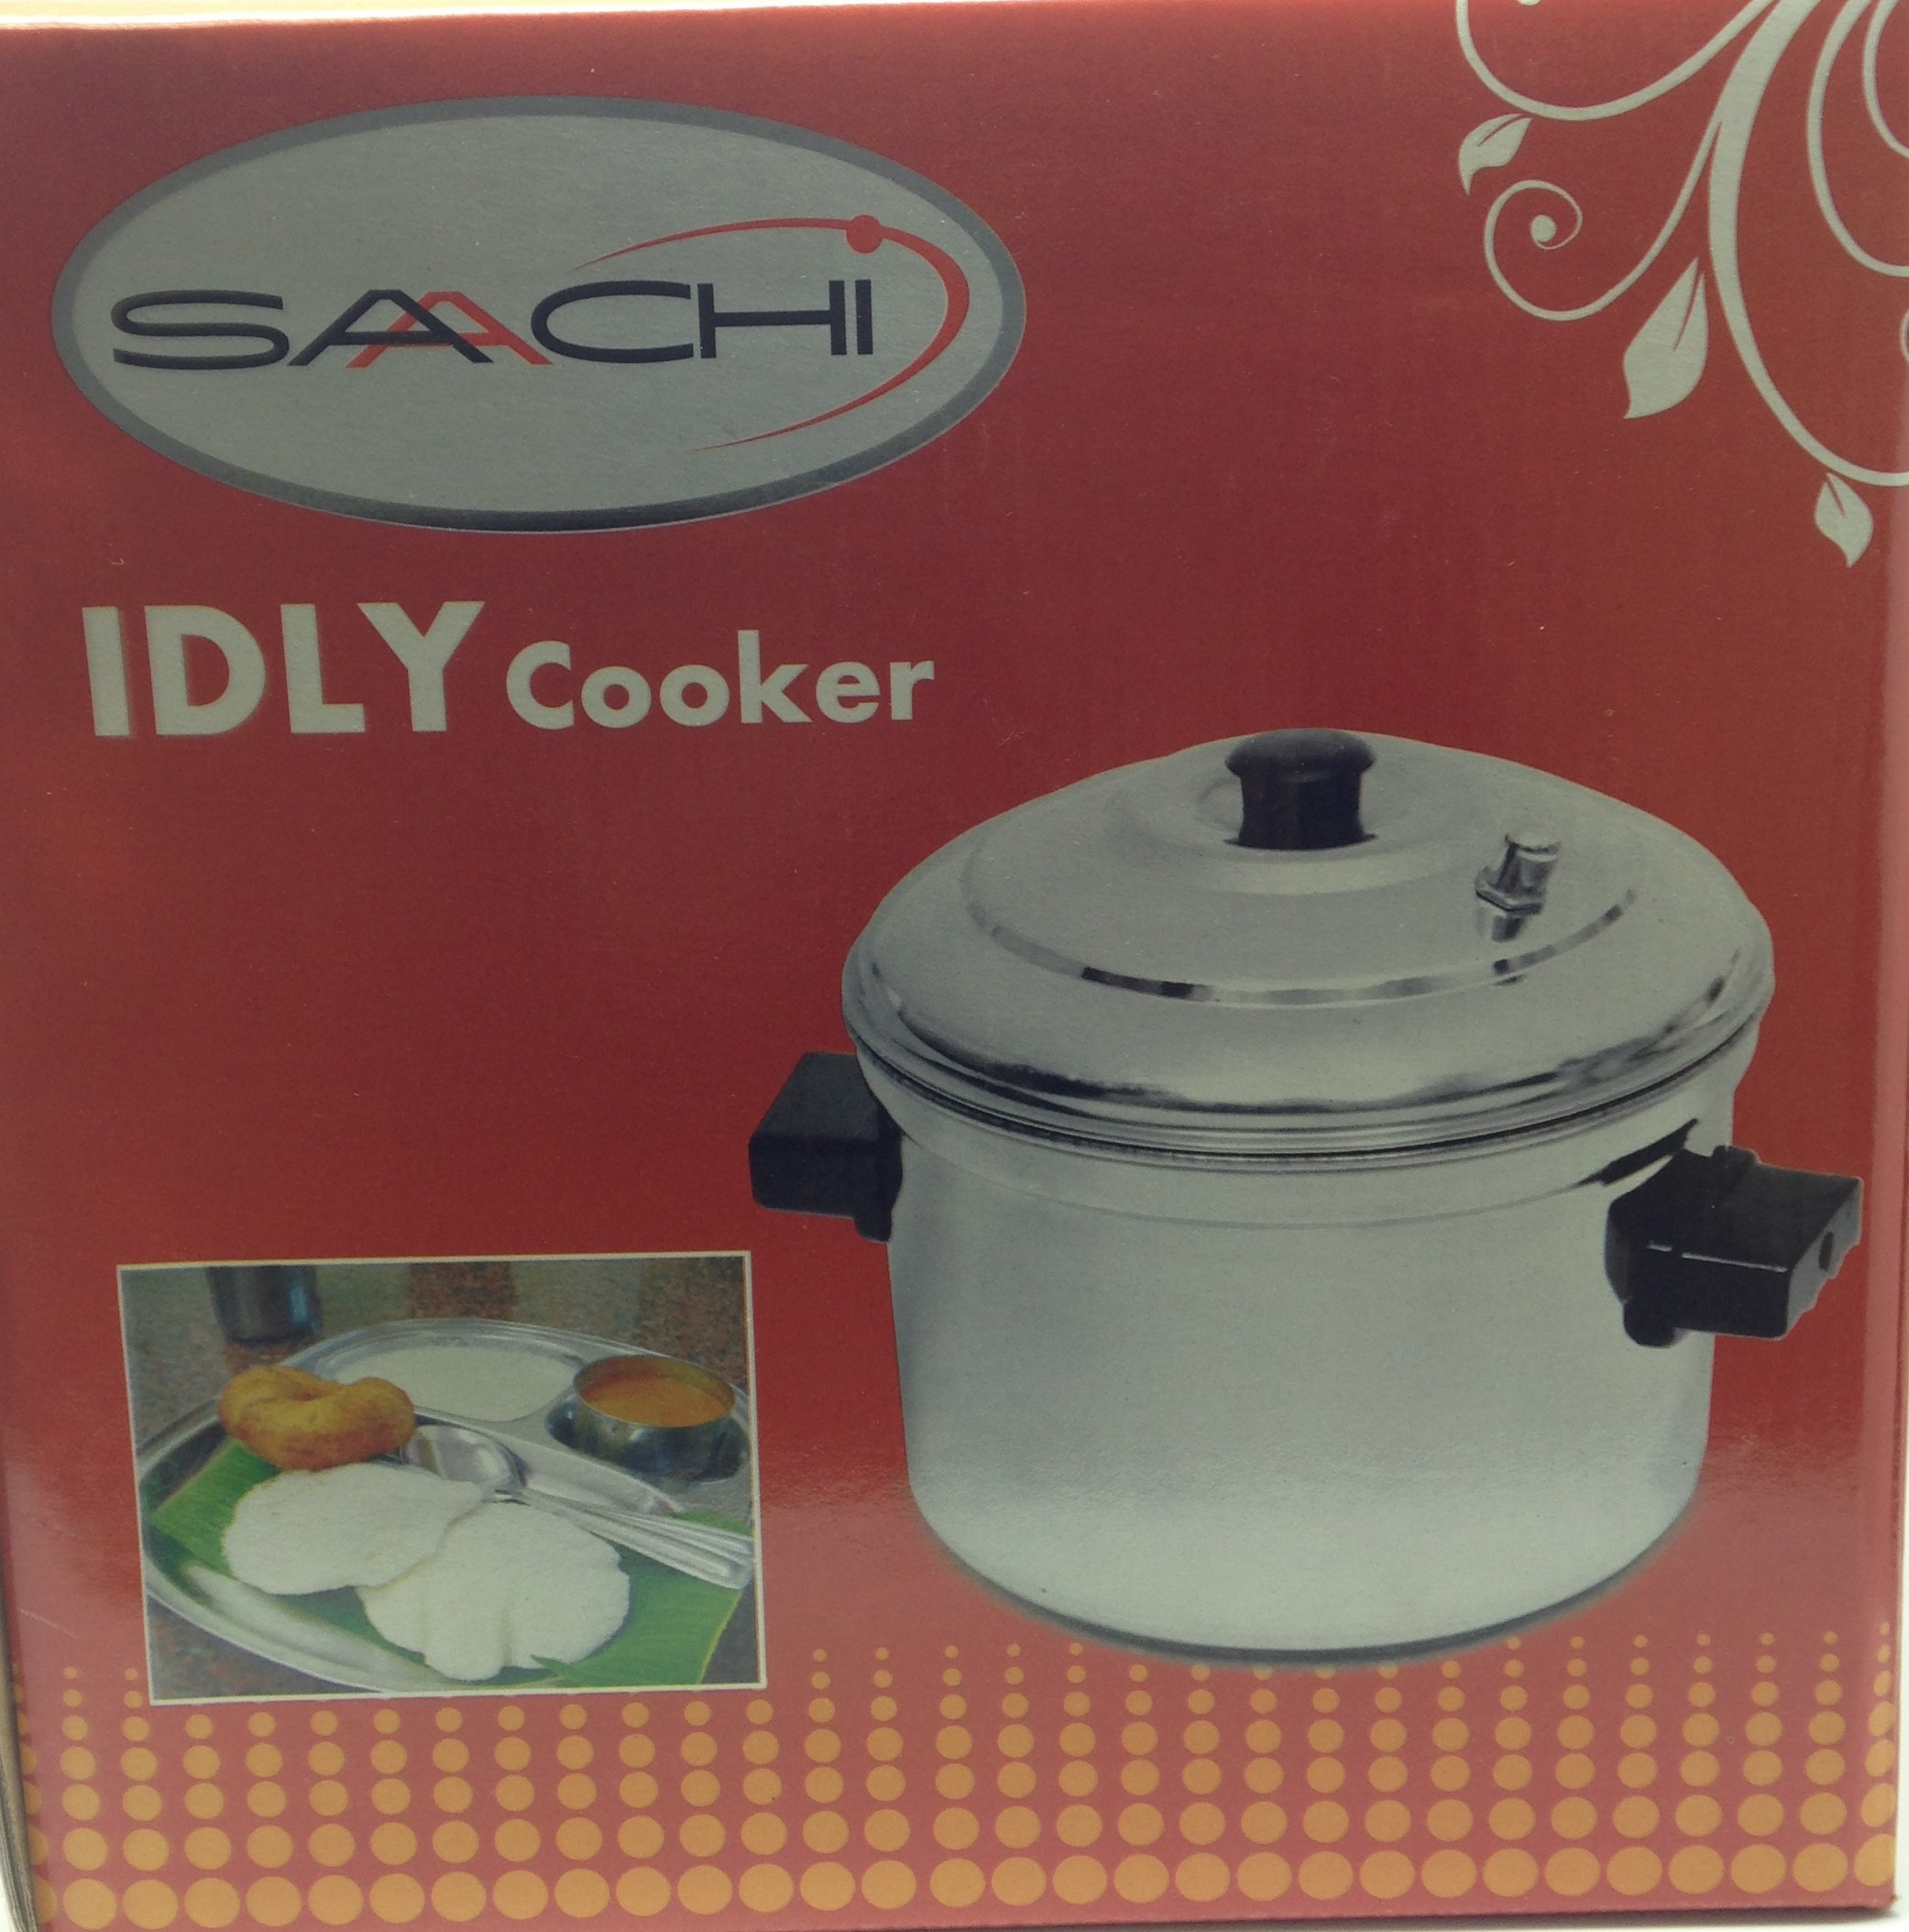 Saachi Stainless Steel Idly Maker Cooker with 4 Idli Stands Makes 16 Idlis (Model SAICM)